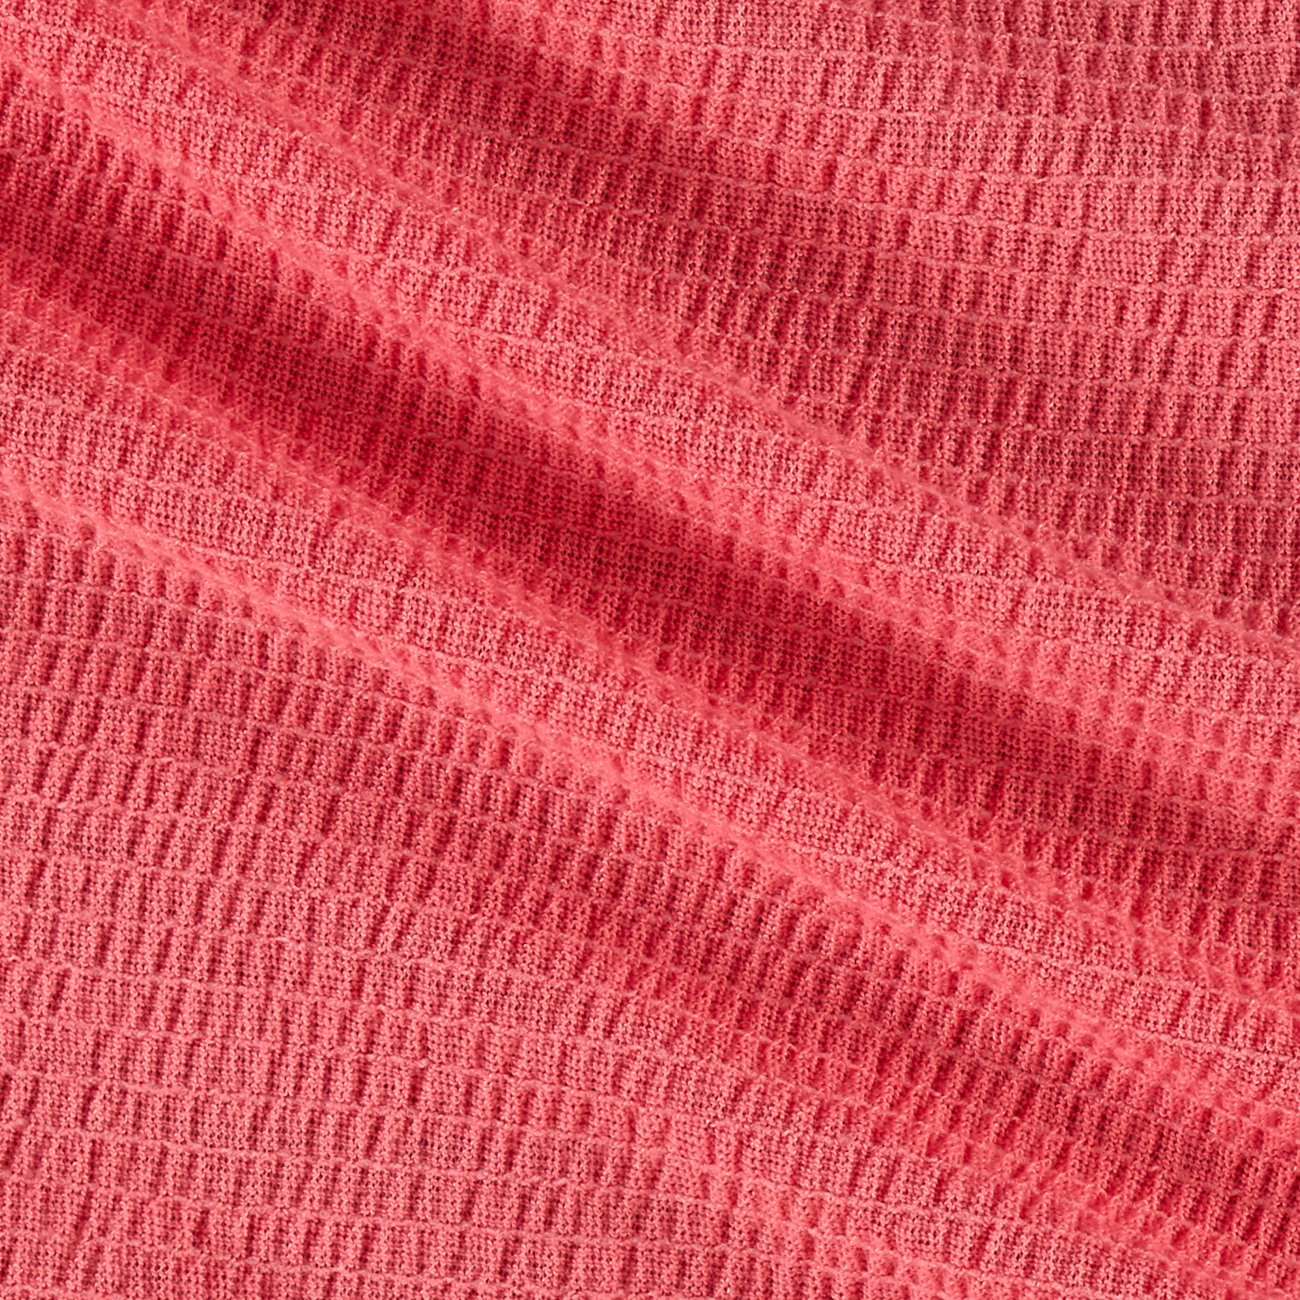 Image of Crinkled Gauze New Coral Fabric